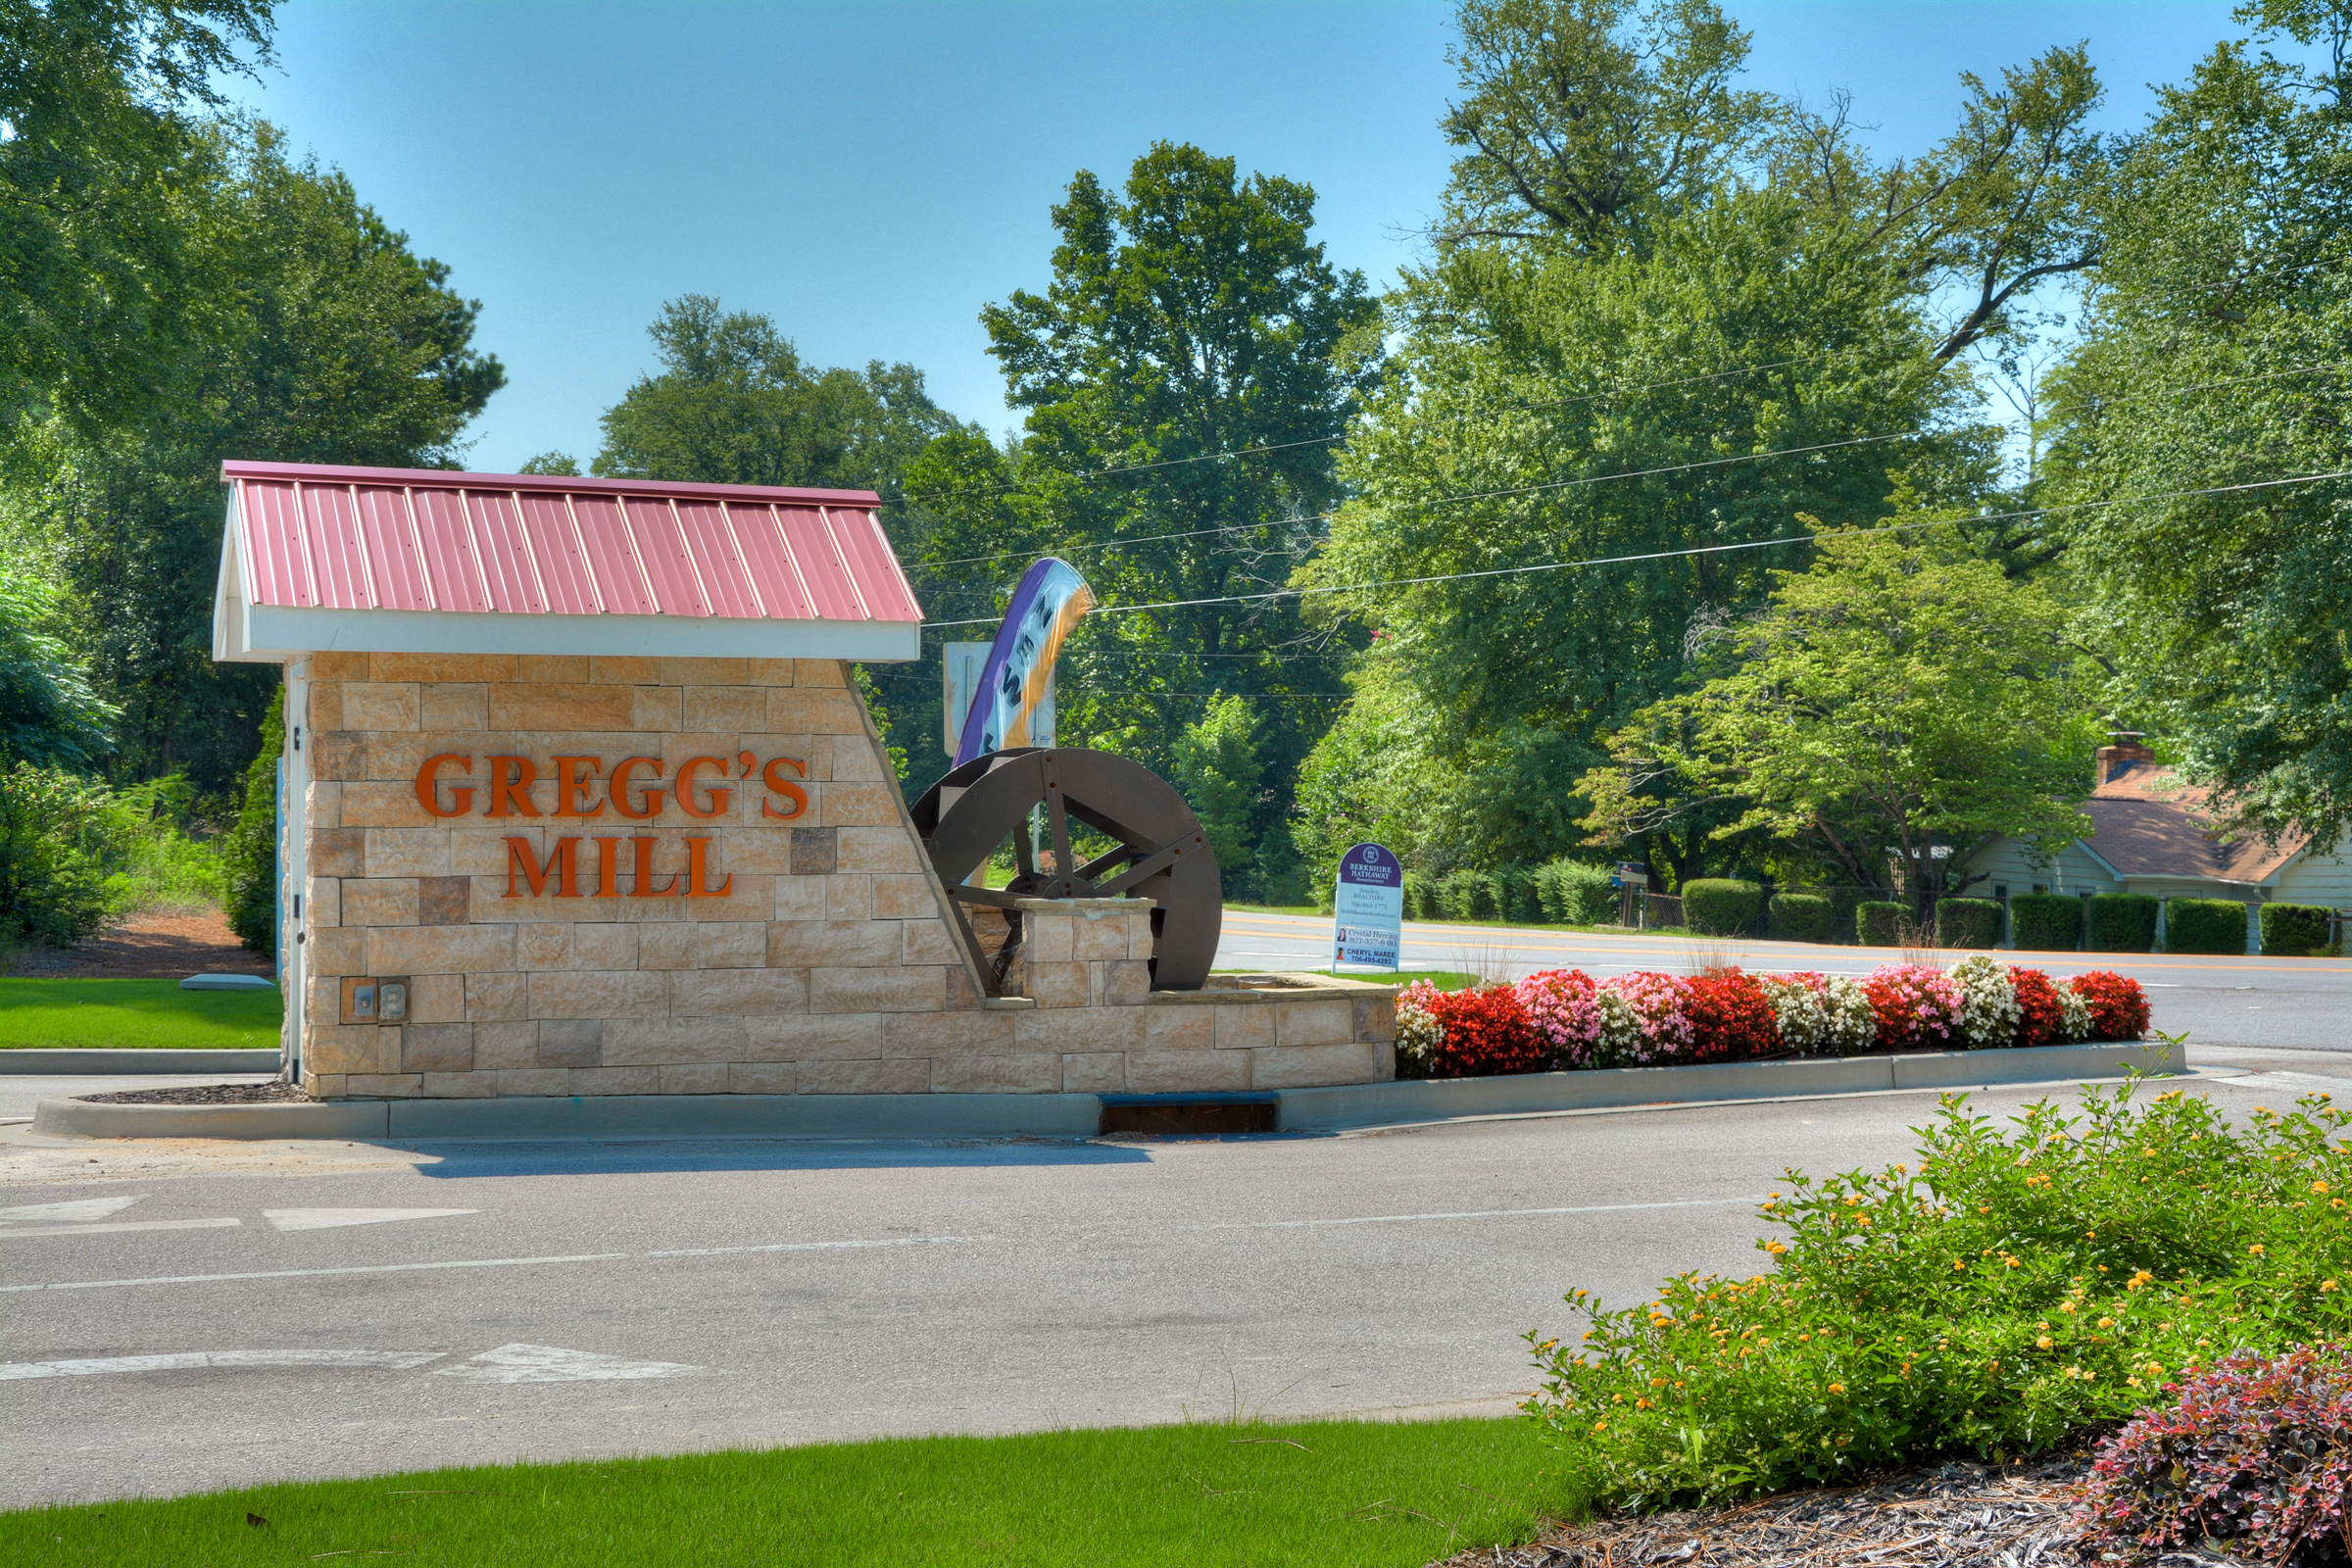 An image of Greggs Mill entrance with flowers.